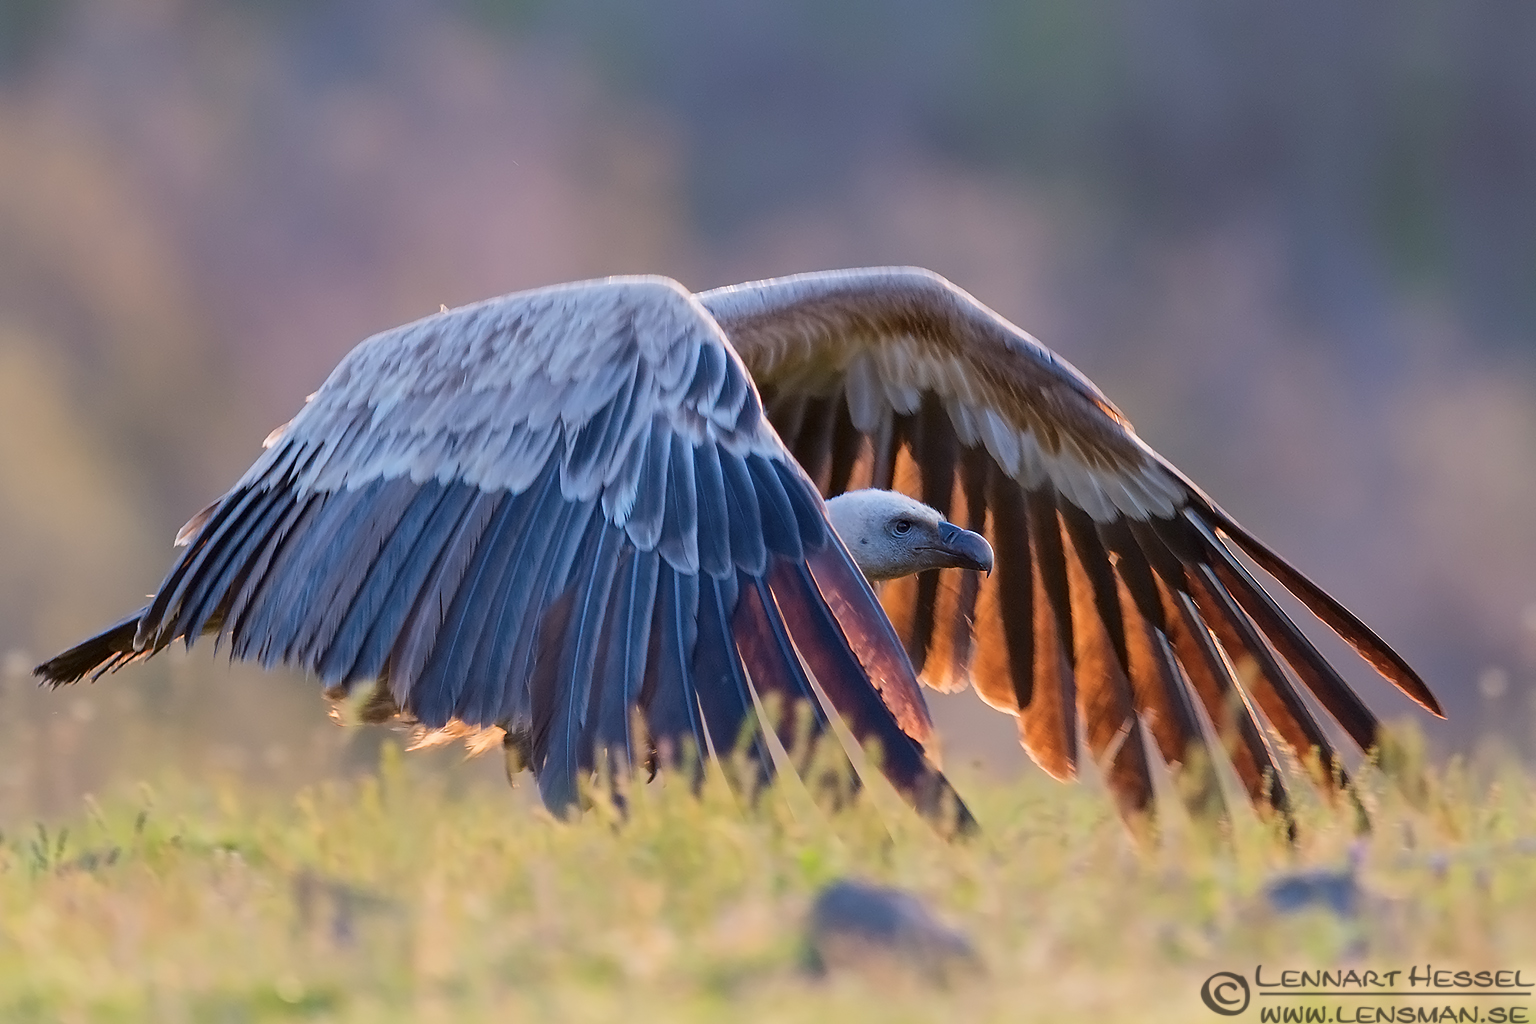 Griffon Vulture in Bulgaria